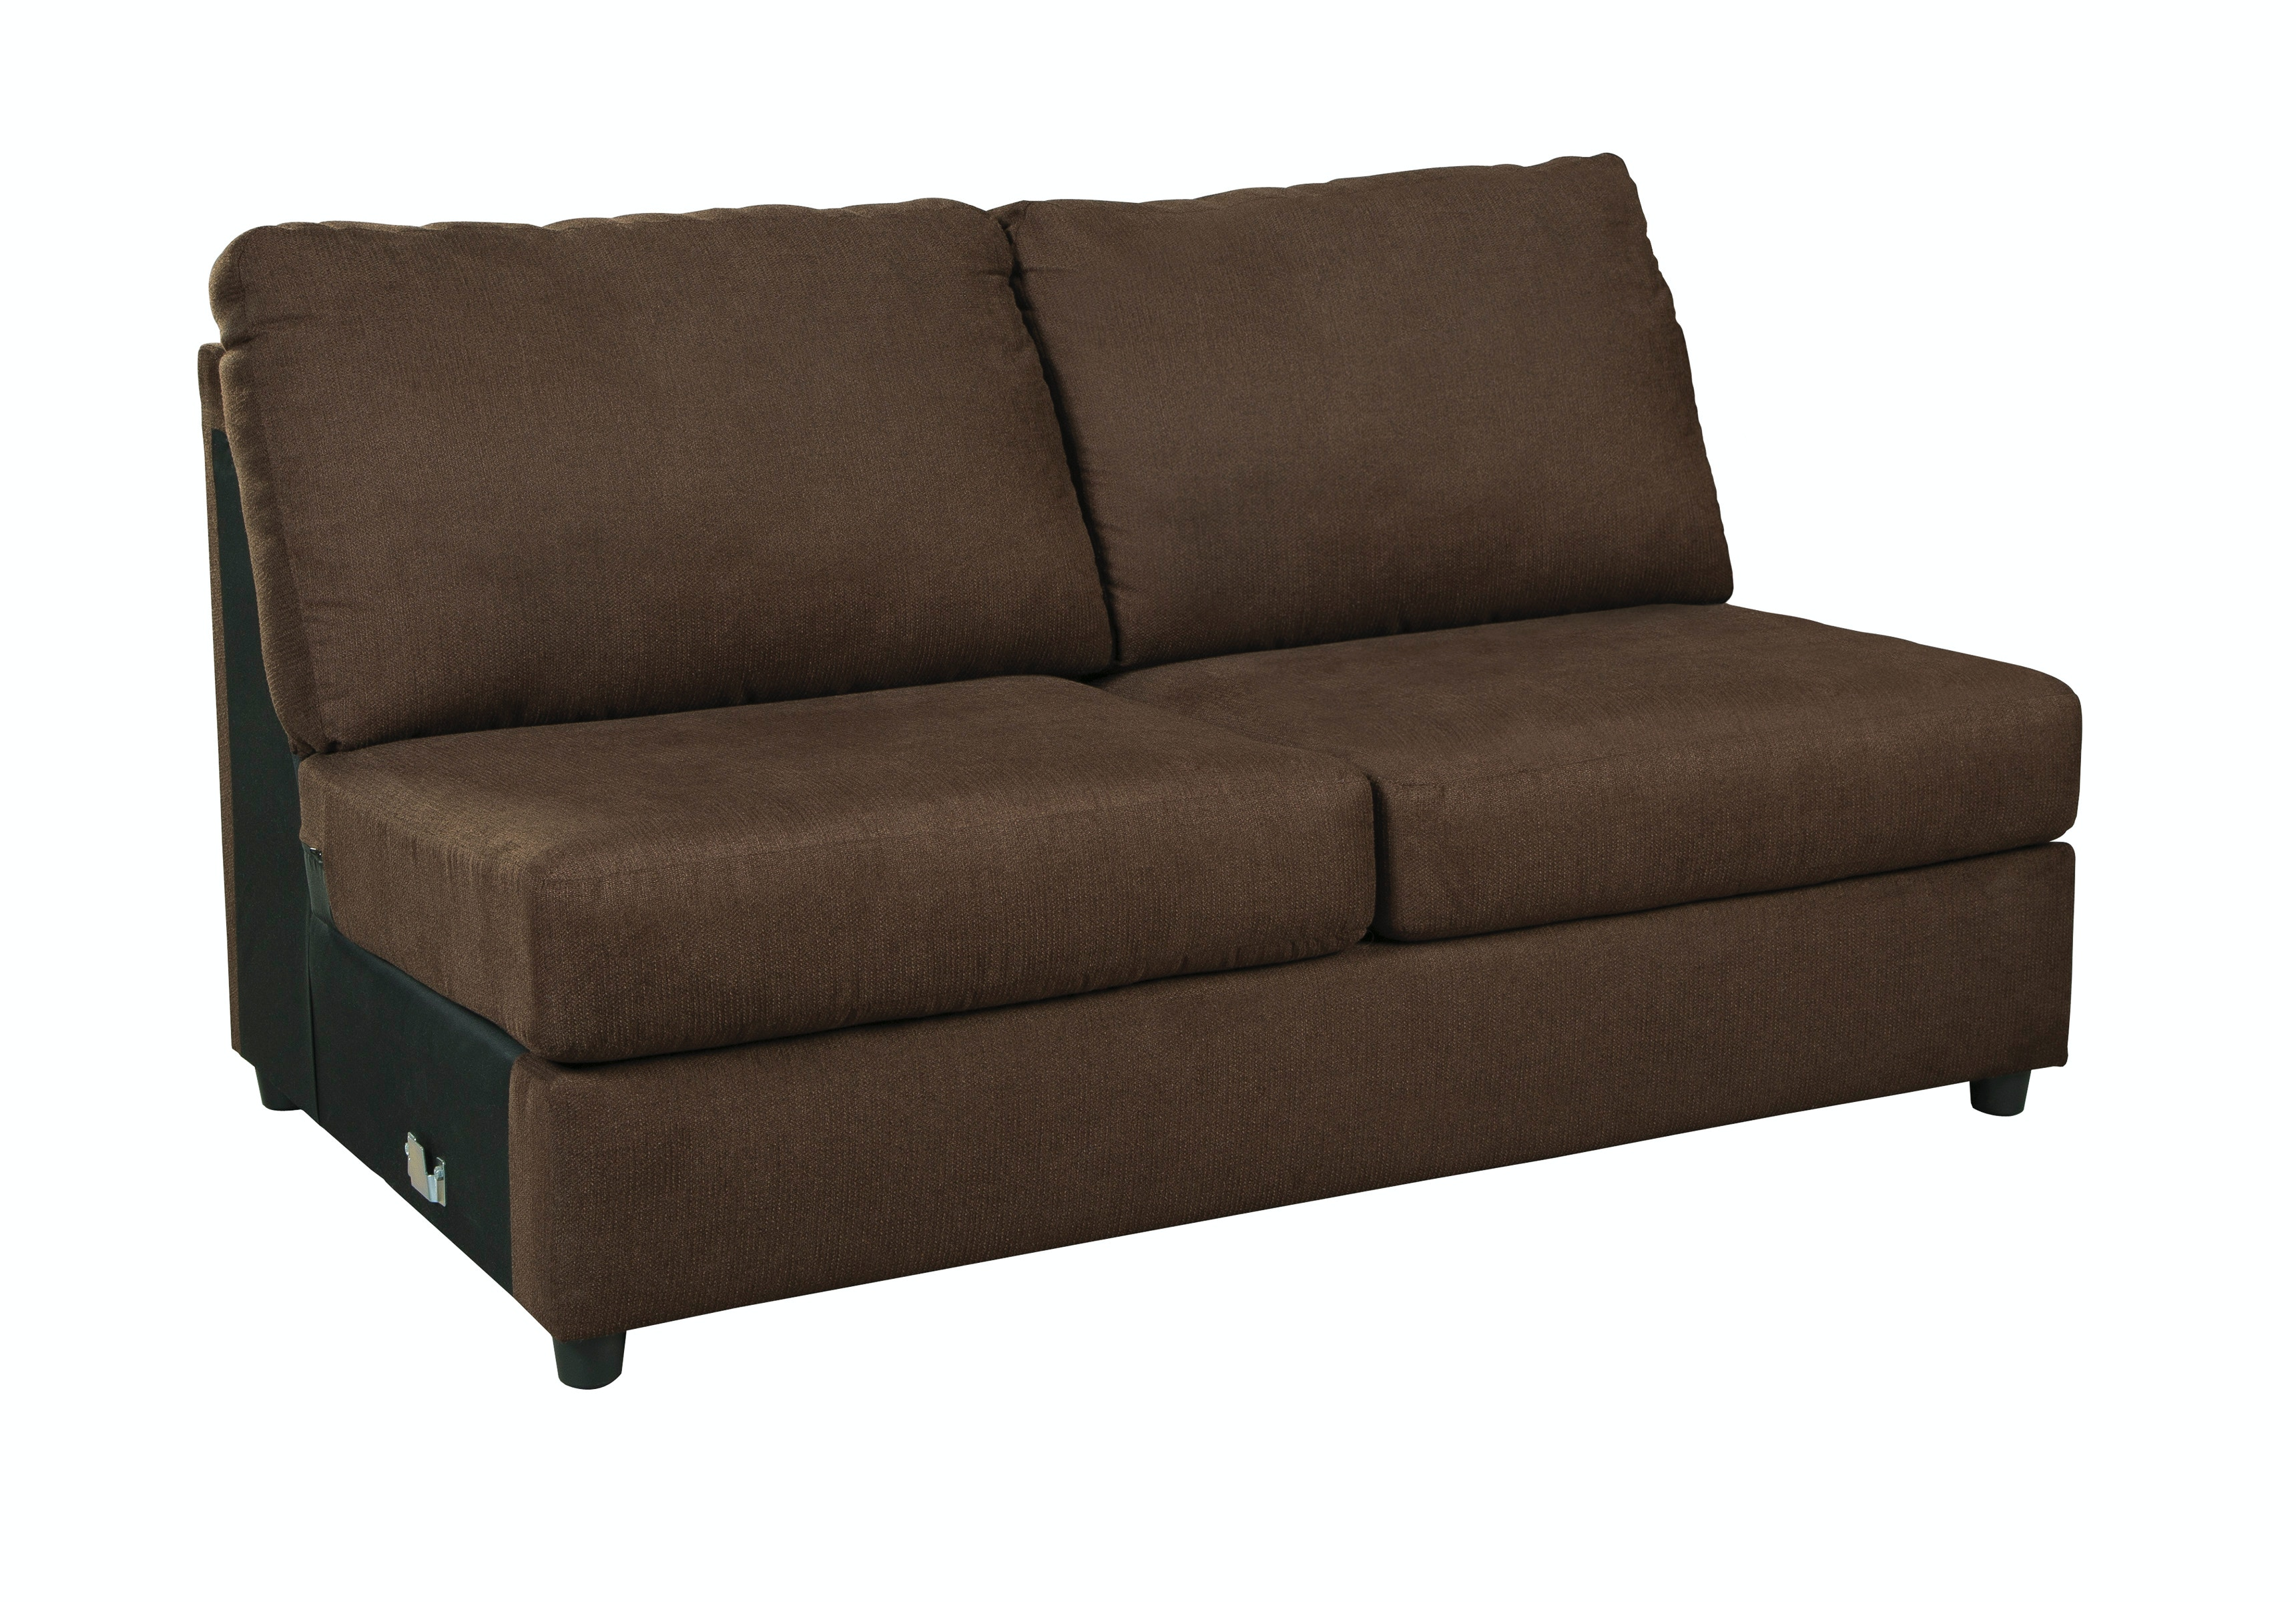 Signature Design by Ashley Three Piece Sectional 64904  sc 1 st  Goldsteins Furniture : signature sectional - Sectionals, Sofas & Couches